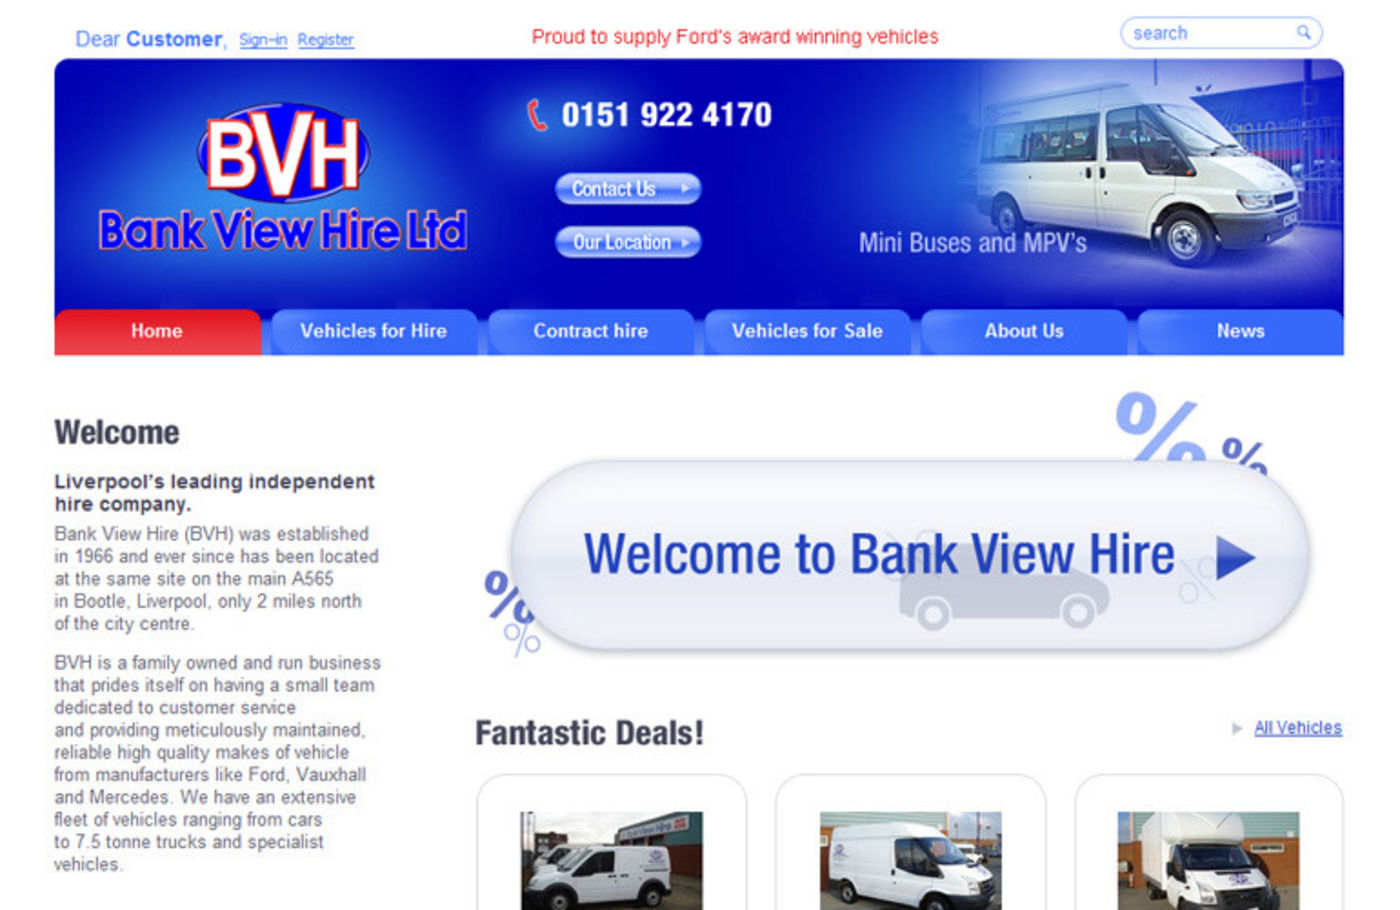 Bank View Hire Homepage header